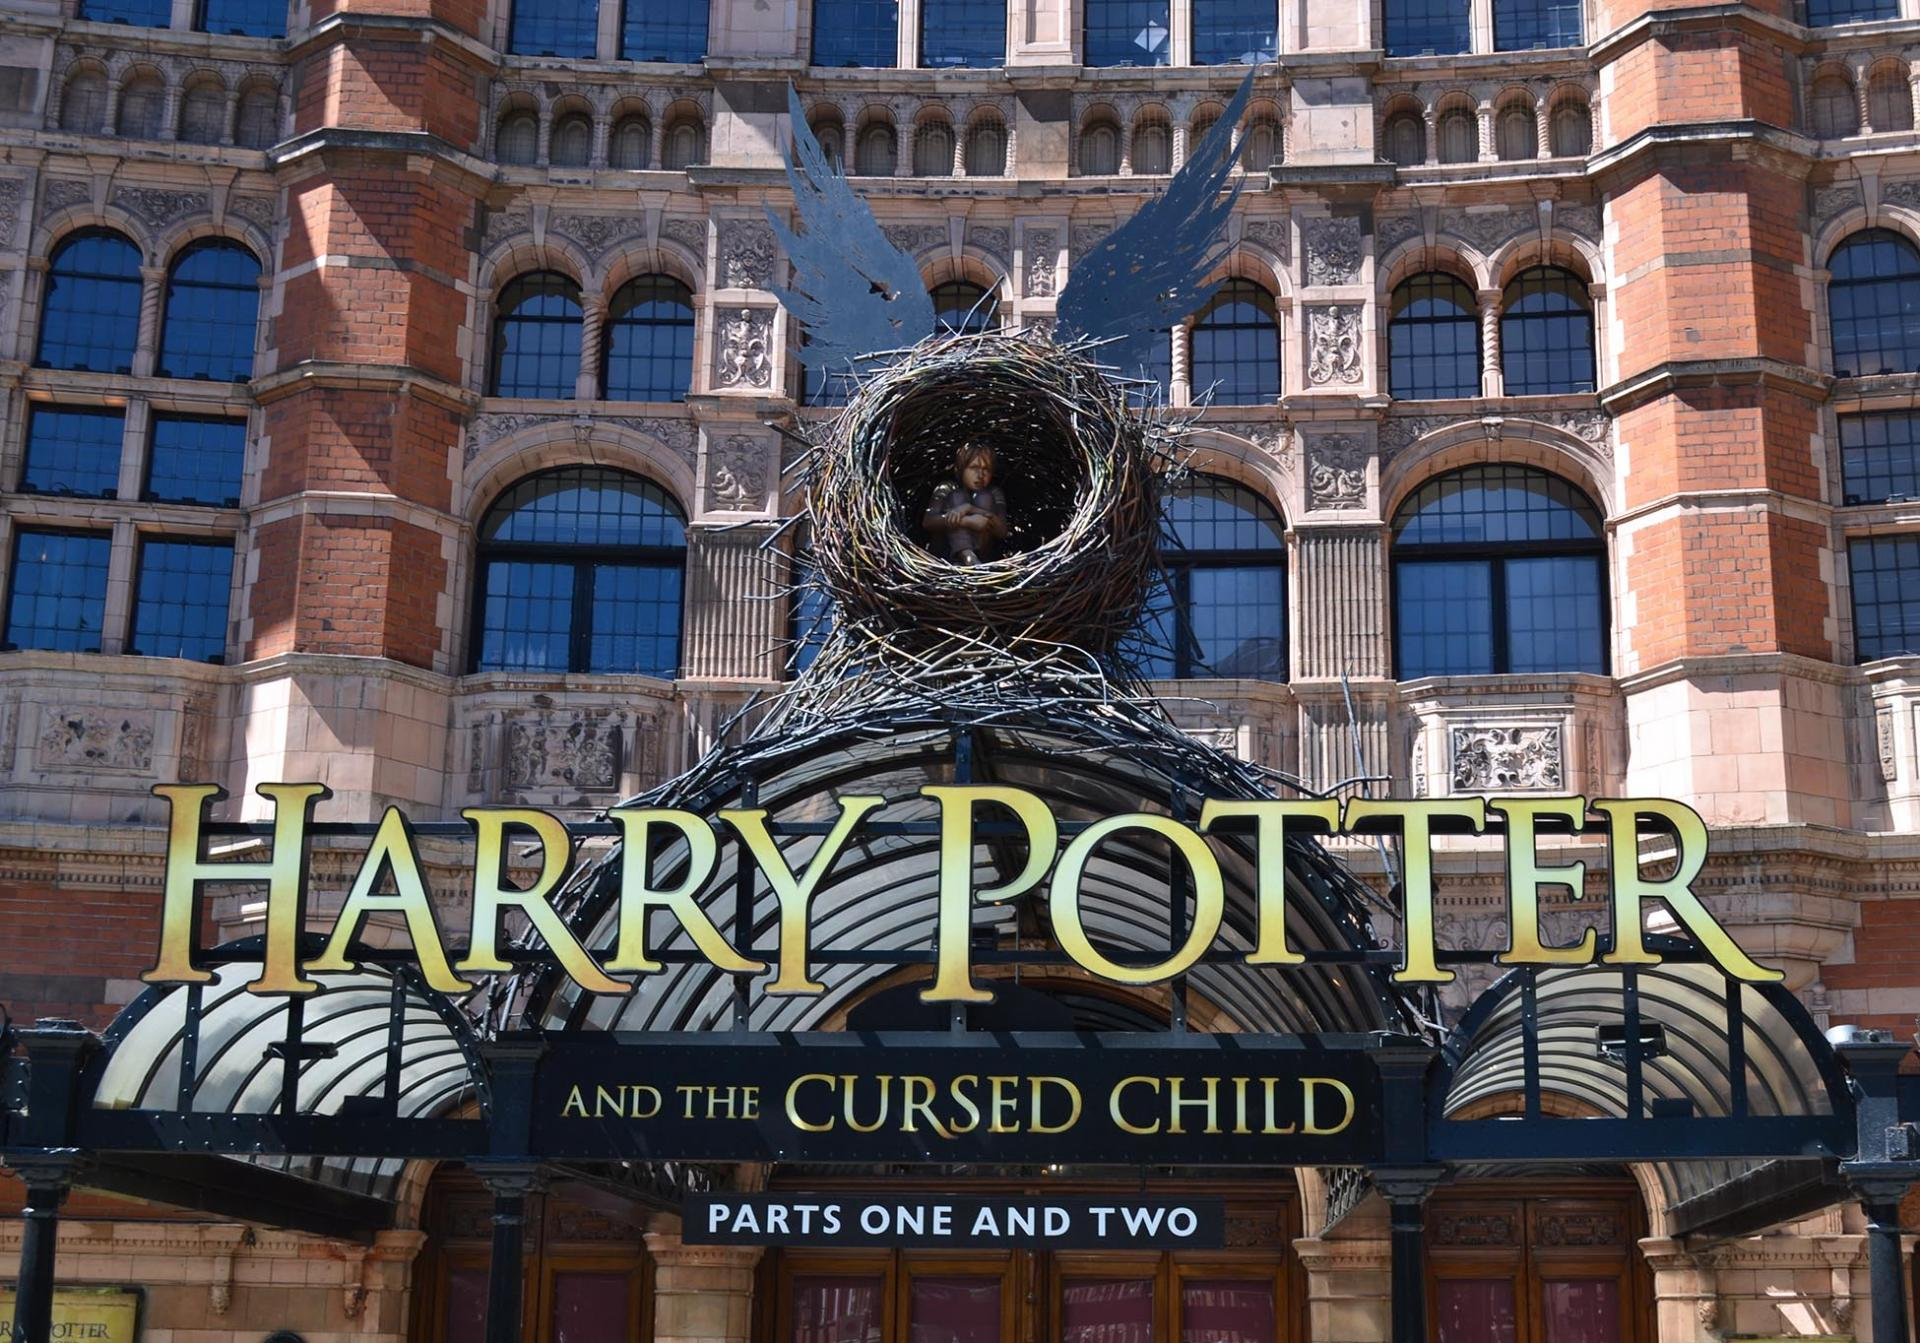 Teatro de Harry Potter en Londres